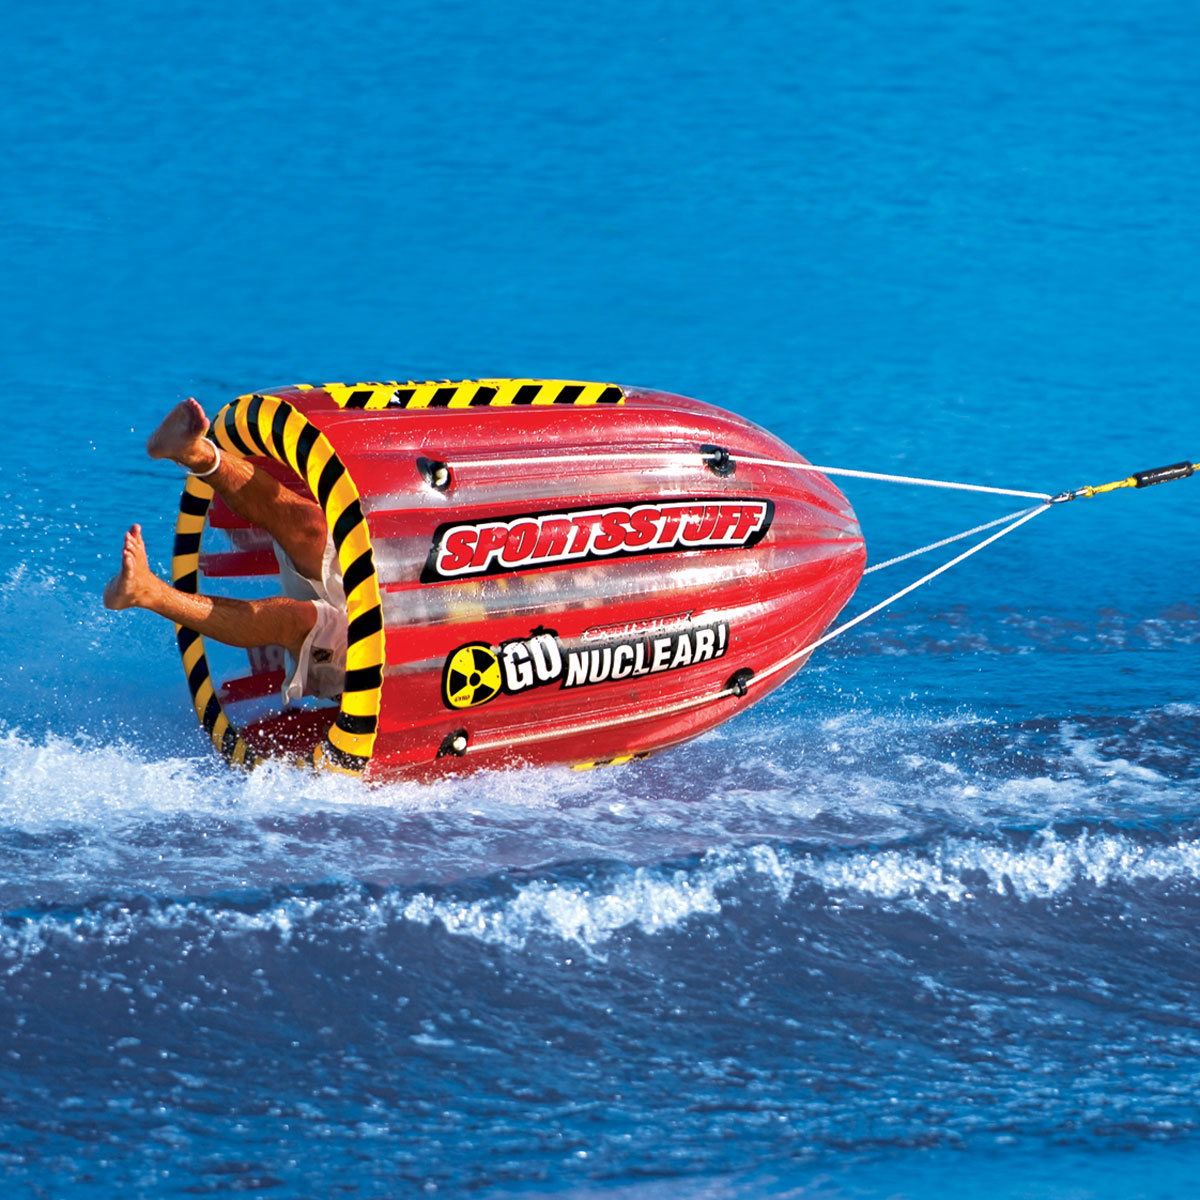 Mr Boats Boat Tow Harness Airhead Gyro Inflatable